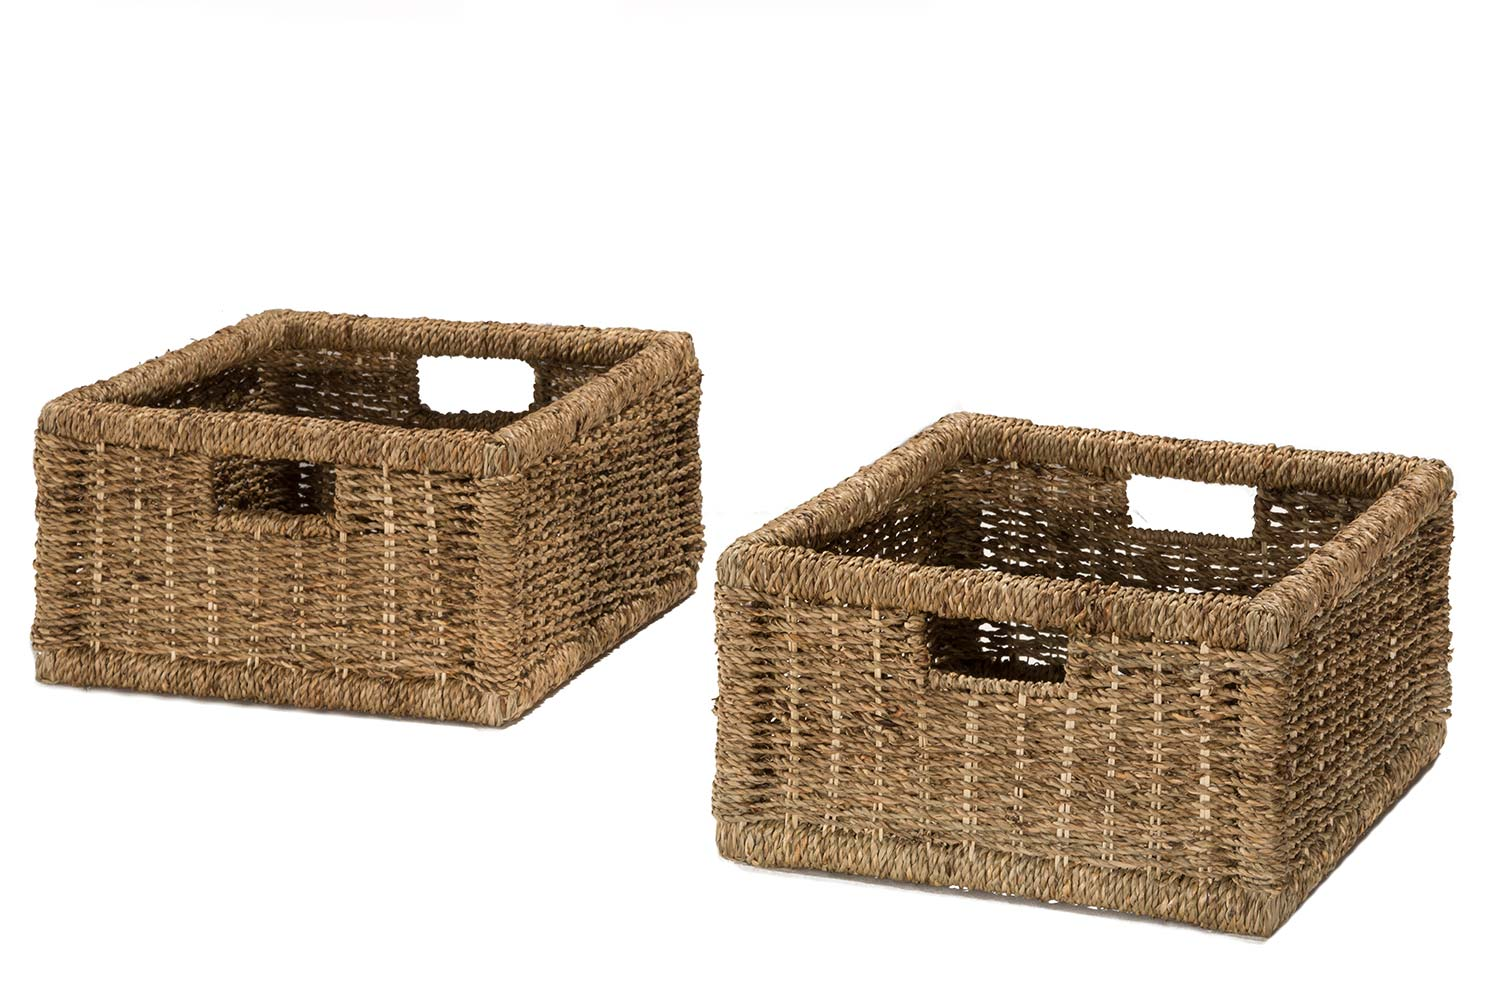 Hillsdale Seneca Basket - Set of 2 - Natural Seagrass